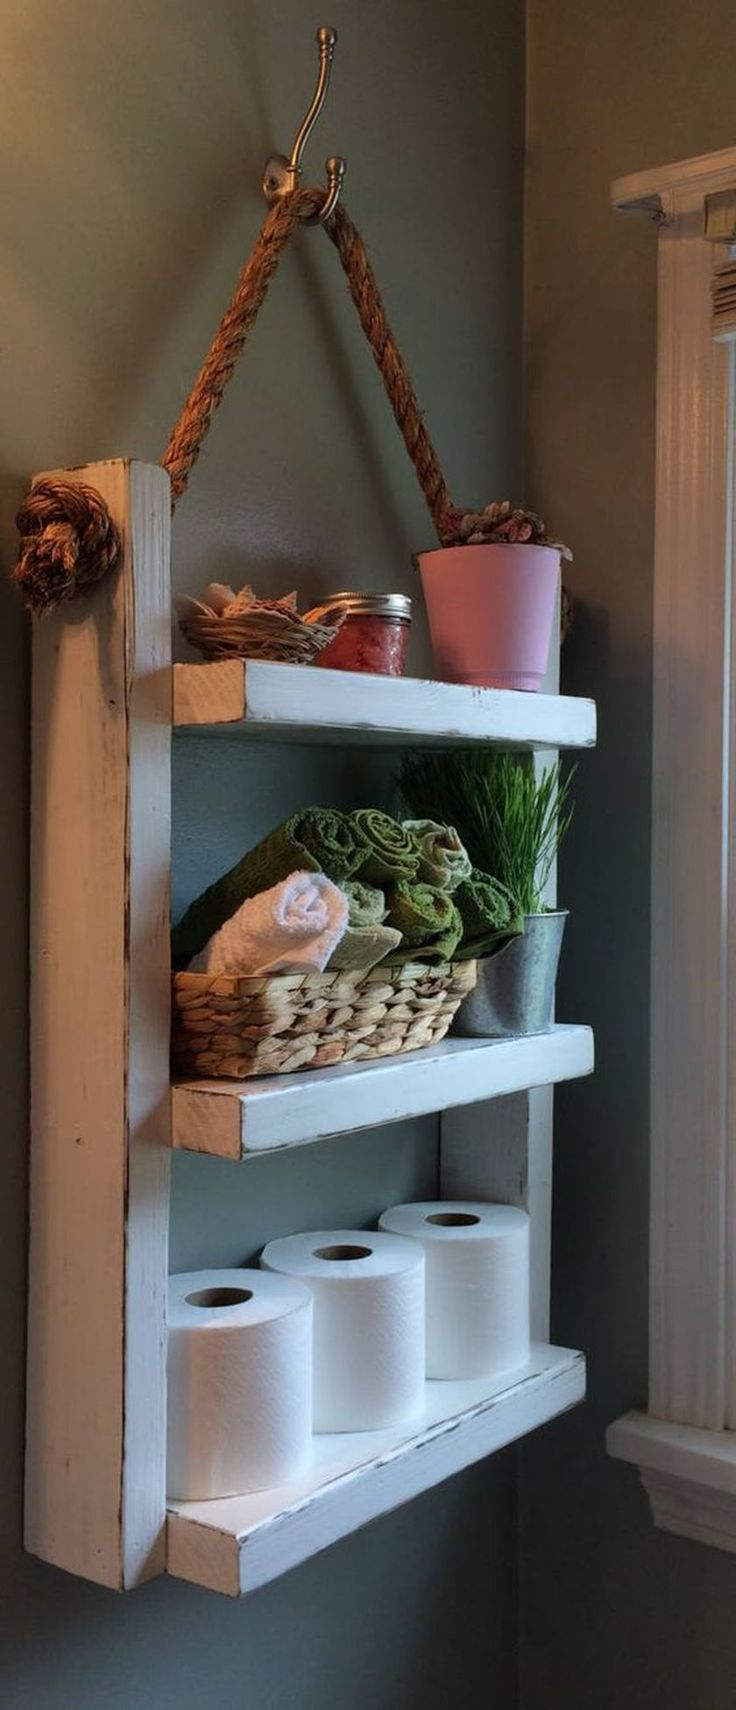 best 25 country bathrooms ideas on pinterest rustic bathrooms 30 rustic country bathroom shelves ideas that you must try https decomg